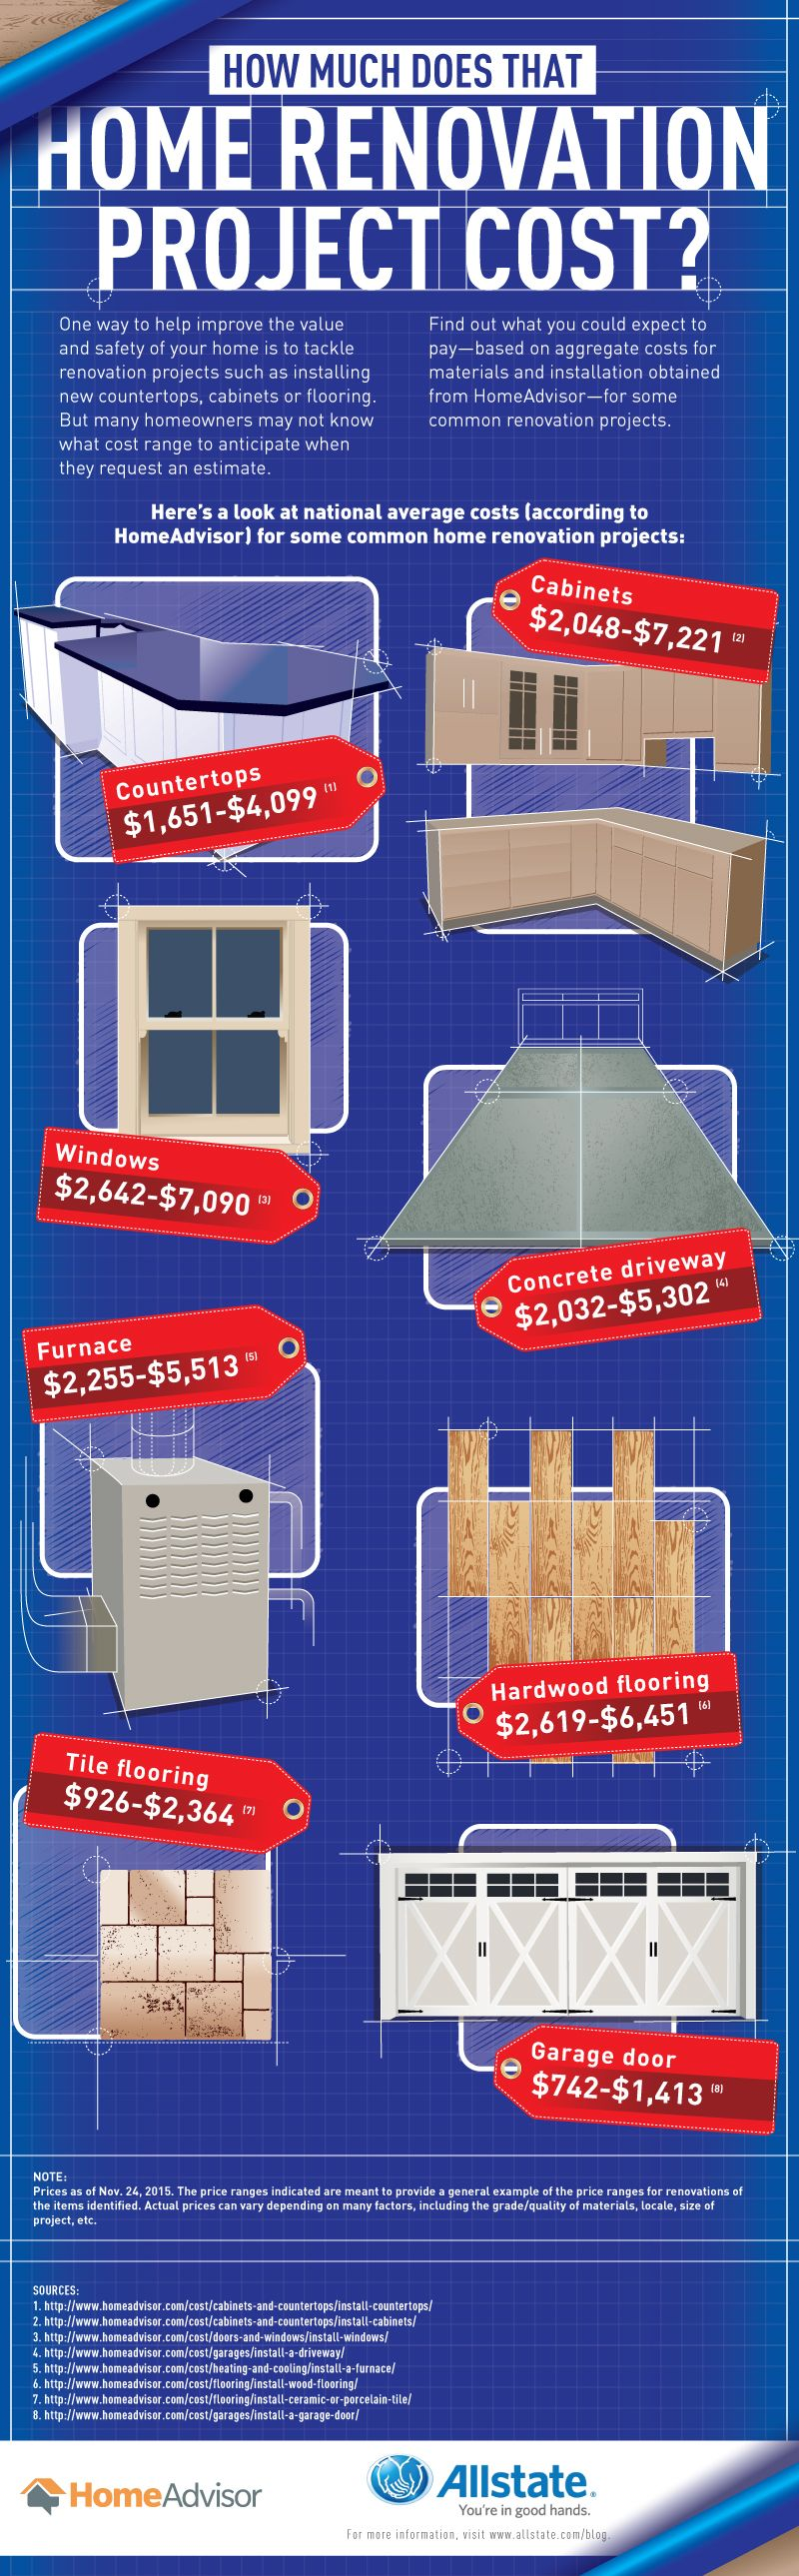 Home remodeling project costs